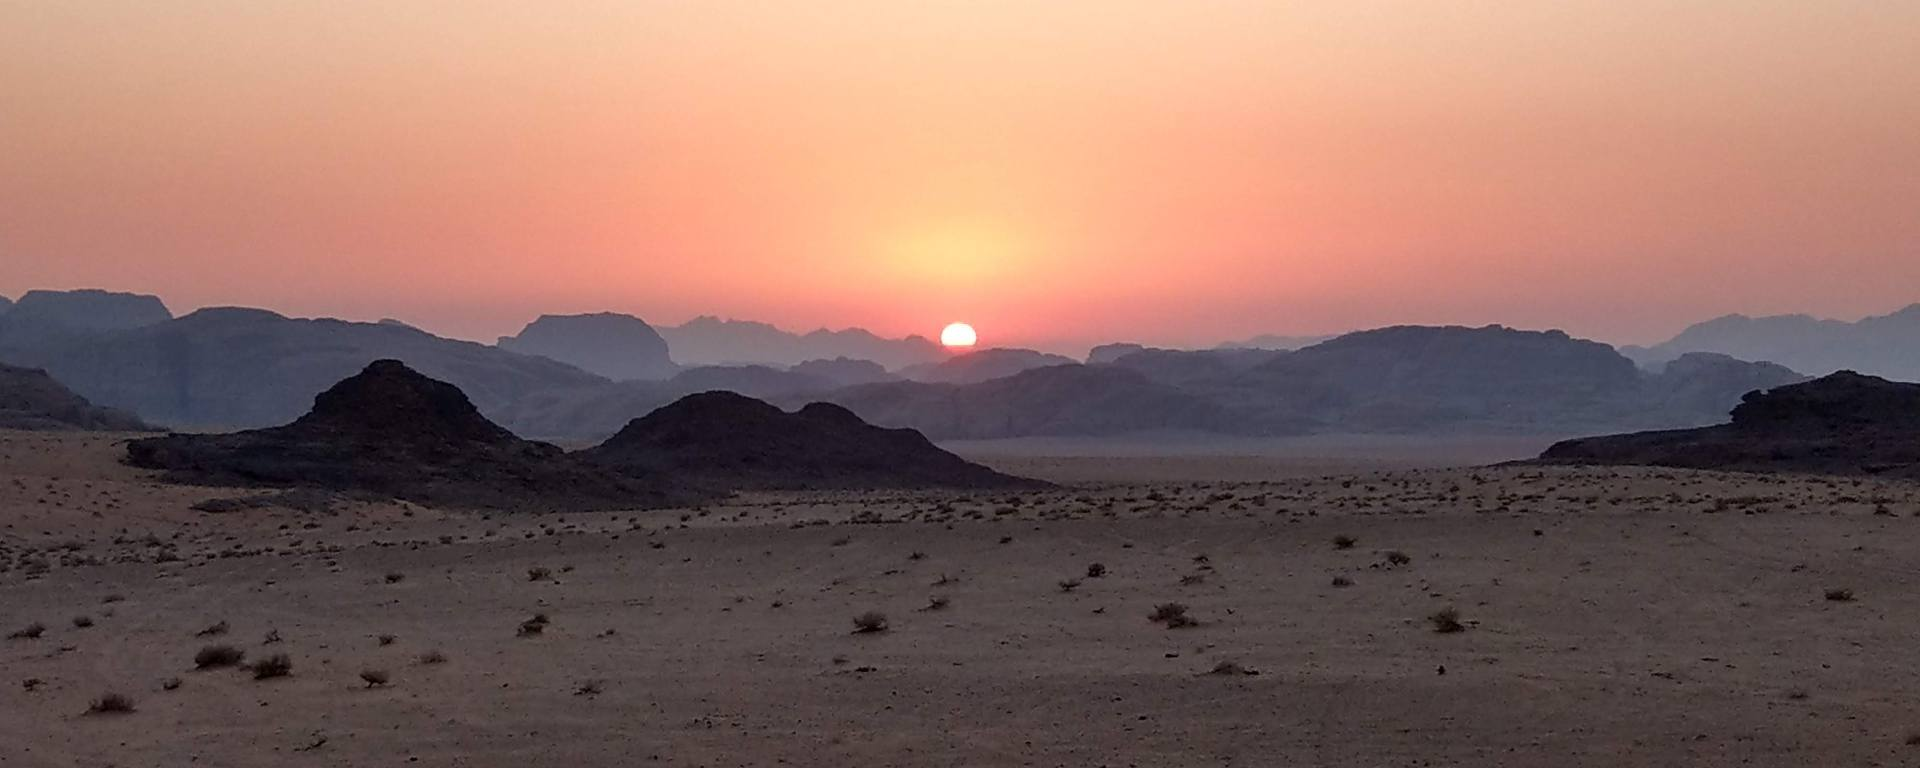 Sunset on Wadi Rum